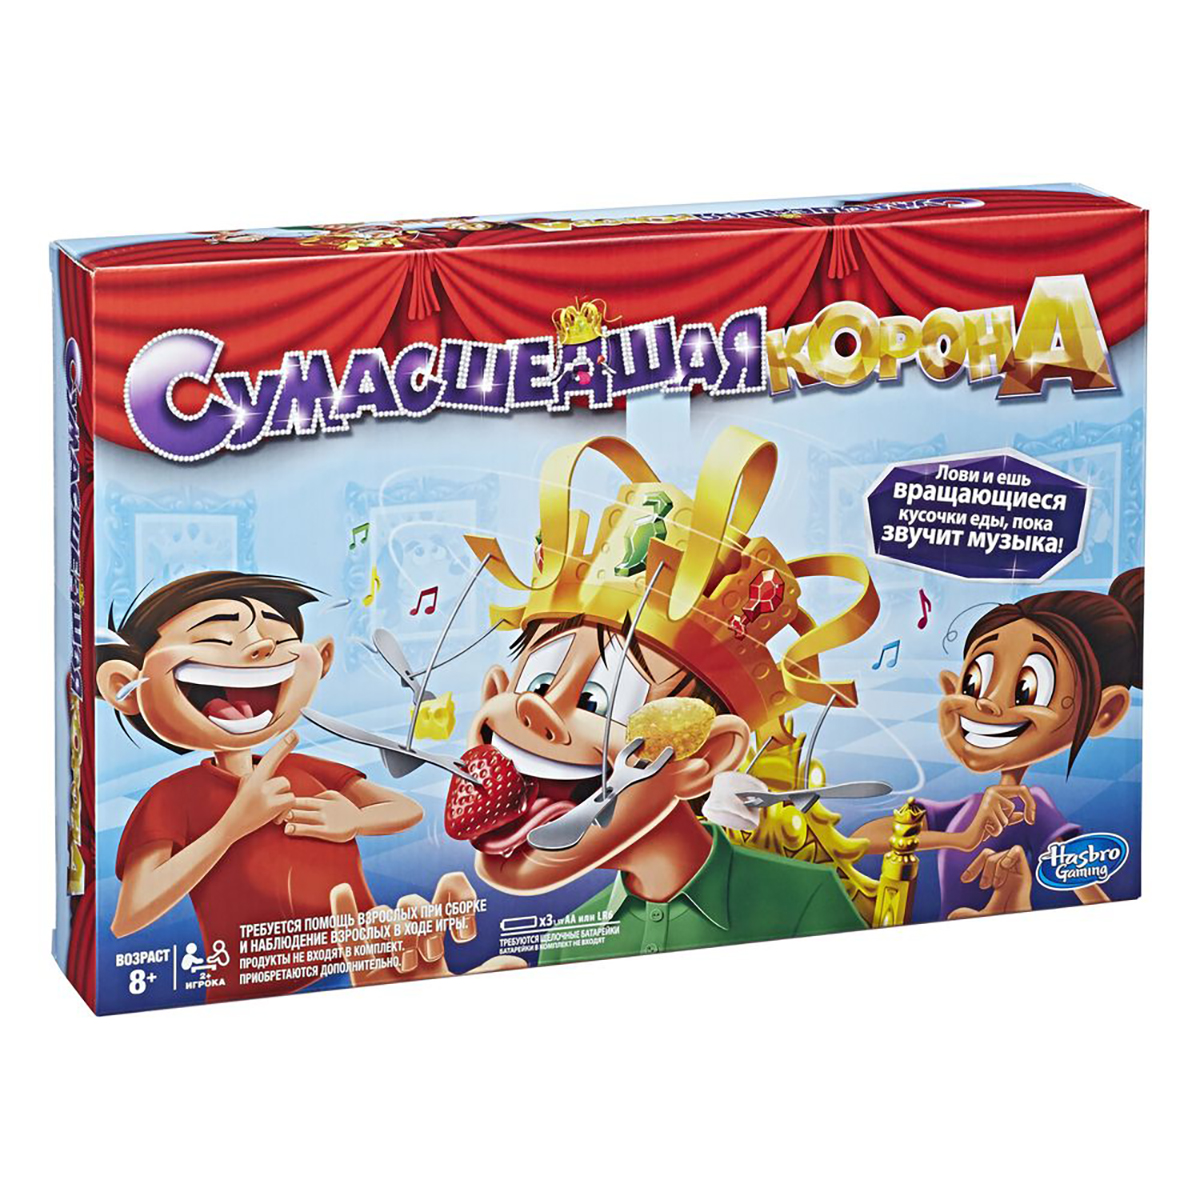 HASBRO GAMING Party Games 8376303  board game fine motor skills for the company developing play girl boy friends hasbro gaming party games 8376303 board game fine motor skills for the company developing play girl boy friends